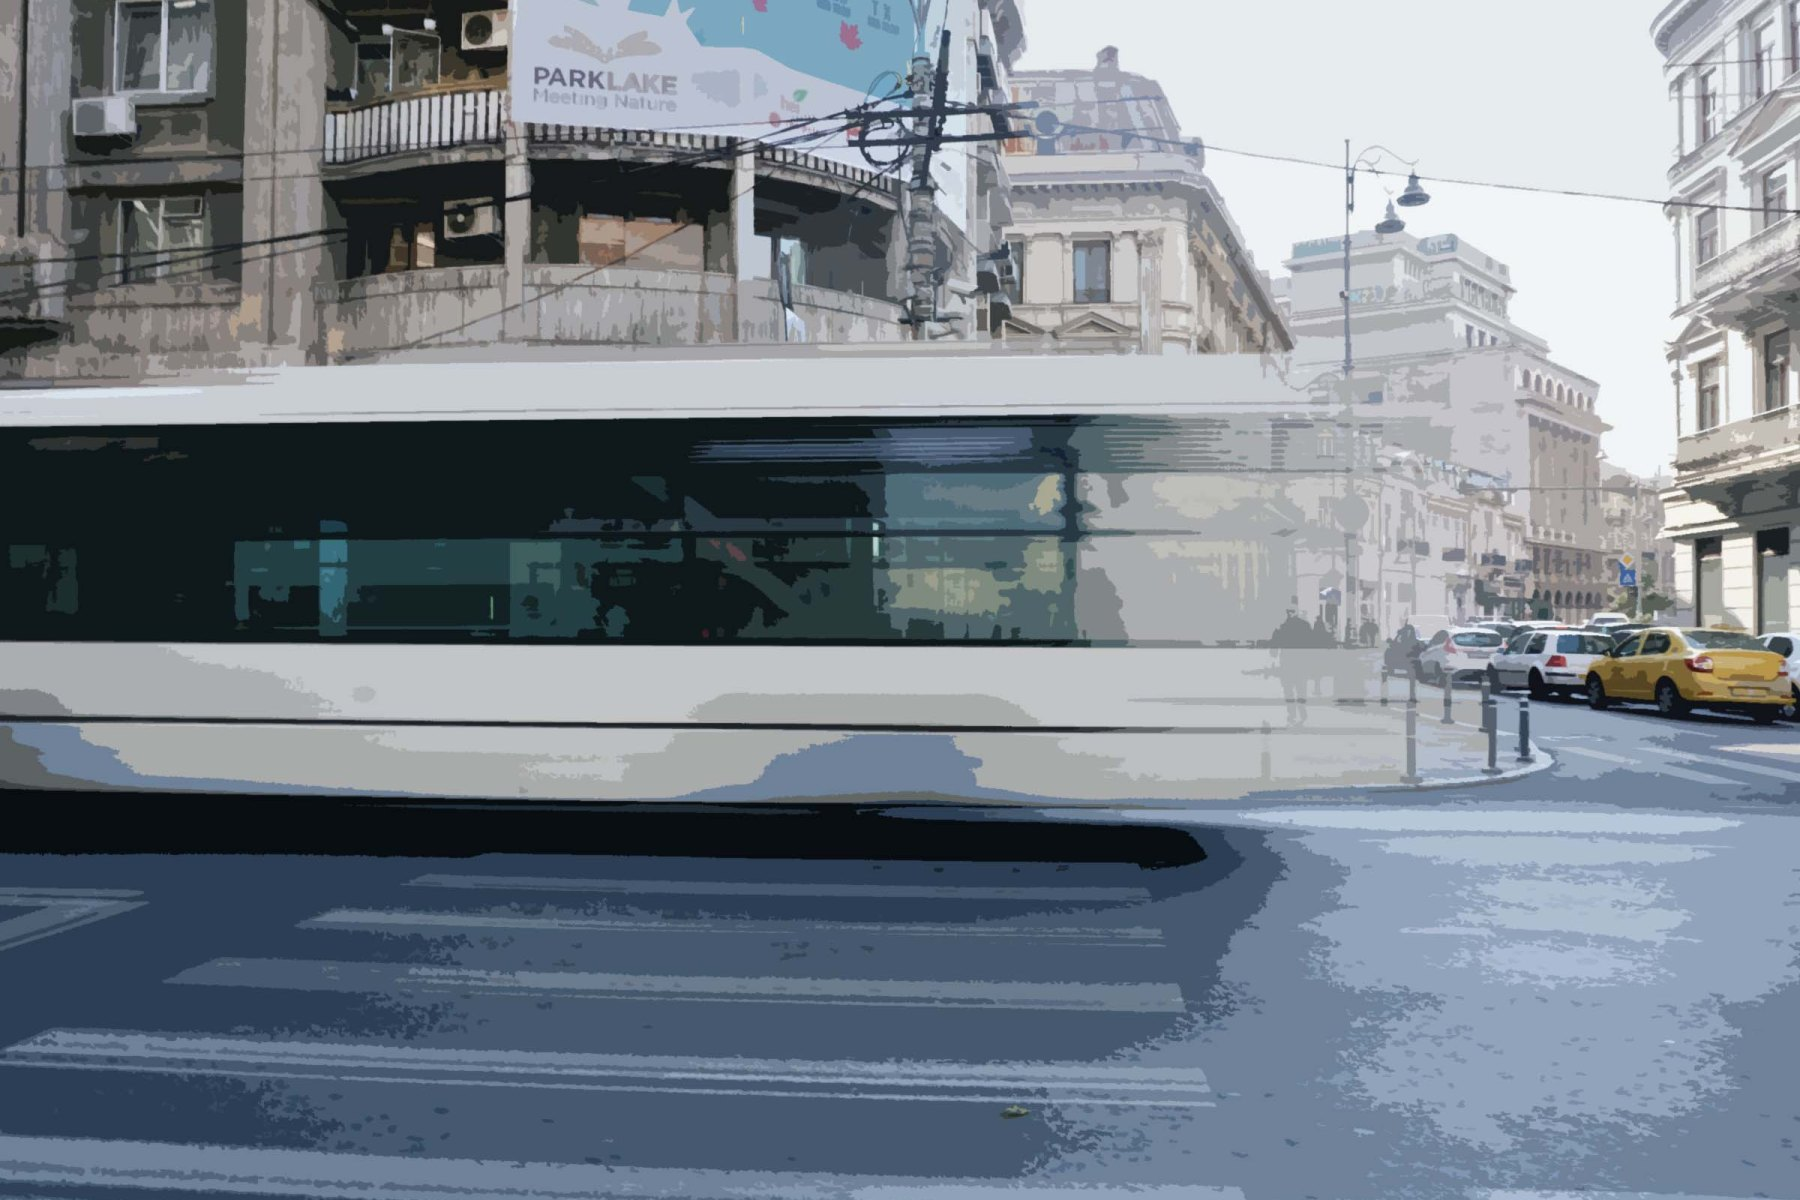 Image of Bucharest, Romania. A large white bus drives past in a whirl and large buildings are in the background. The street in the foreground are empty, and one man looks transparent and diminutive in the background